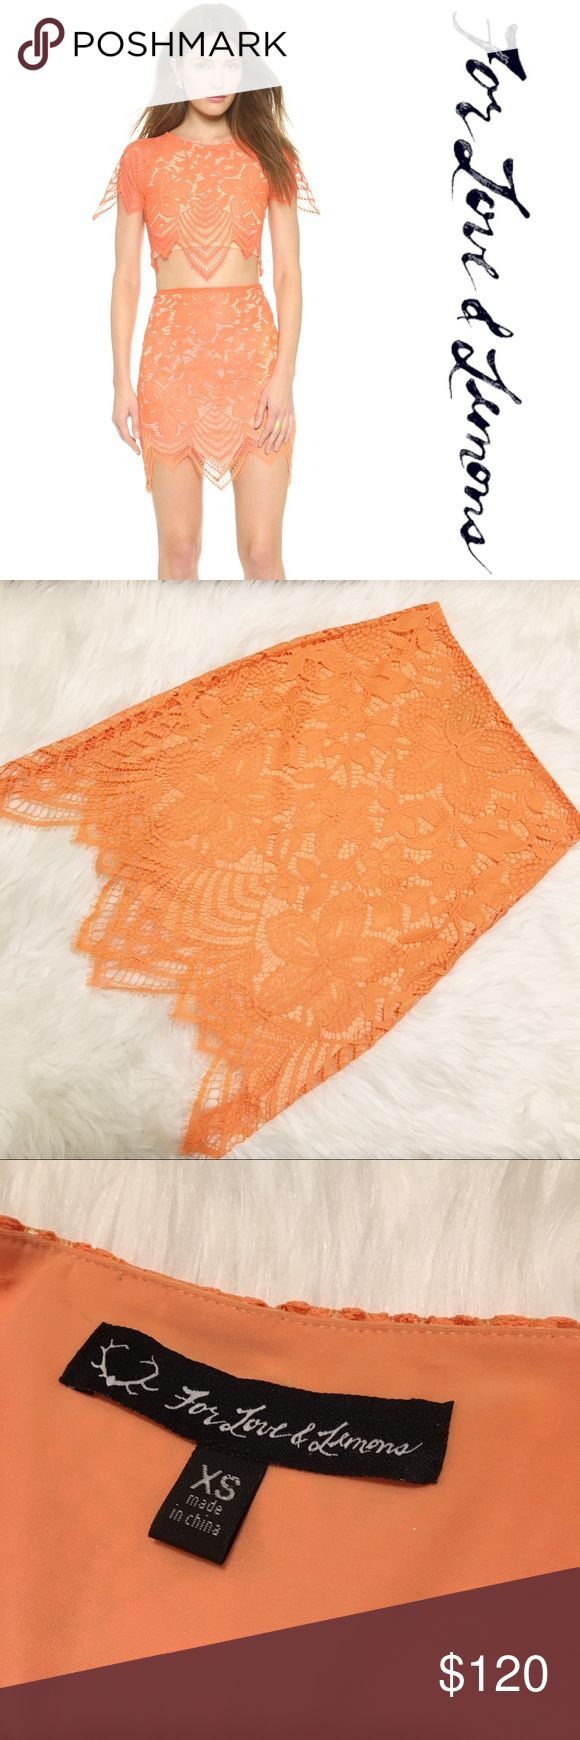 """For Love & Lemons Guava Lace Mini Skirt EUC • Guava Lace Mini skirt in Tropical Orange • Pairs perfectly with the Luna Lace Crop top • NOTE: THIS LISTING IS FOR THE SKIRT ONLY • invisible side zipper   - Size: XS - Material: pictured   - Style: lace mini skirt  -Stretch: no  -Lined: yes   *Measurements (approximation taken laying flat): *   Waist: 12""""  Length: 16.5"""" at shorted, 20"""" at longest  Hips: 16.5"""" For Love And Lemons Skirts Mini"""